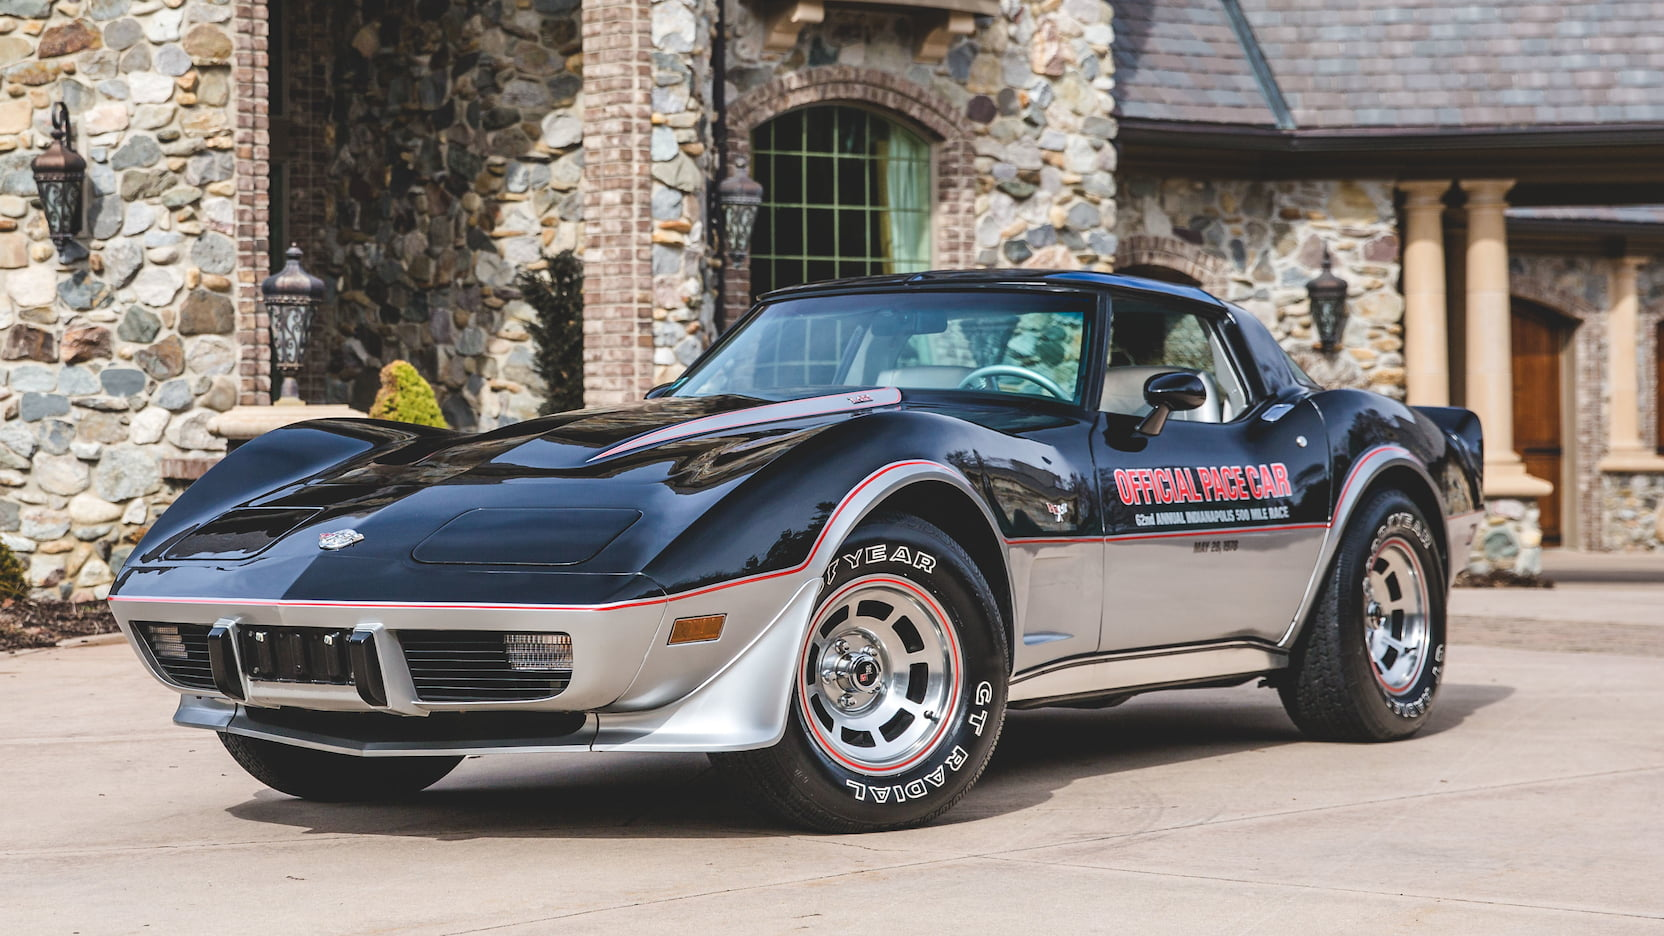 1978 Chevrolet Corvette Pace Car Edition front 3/4